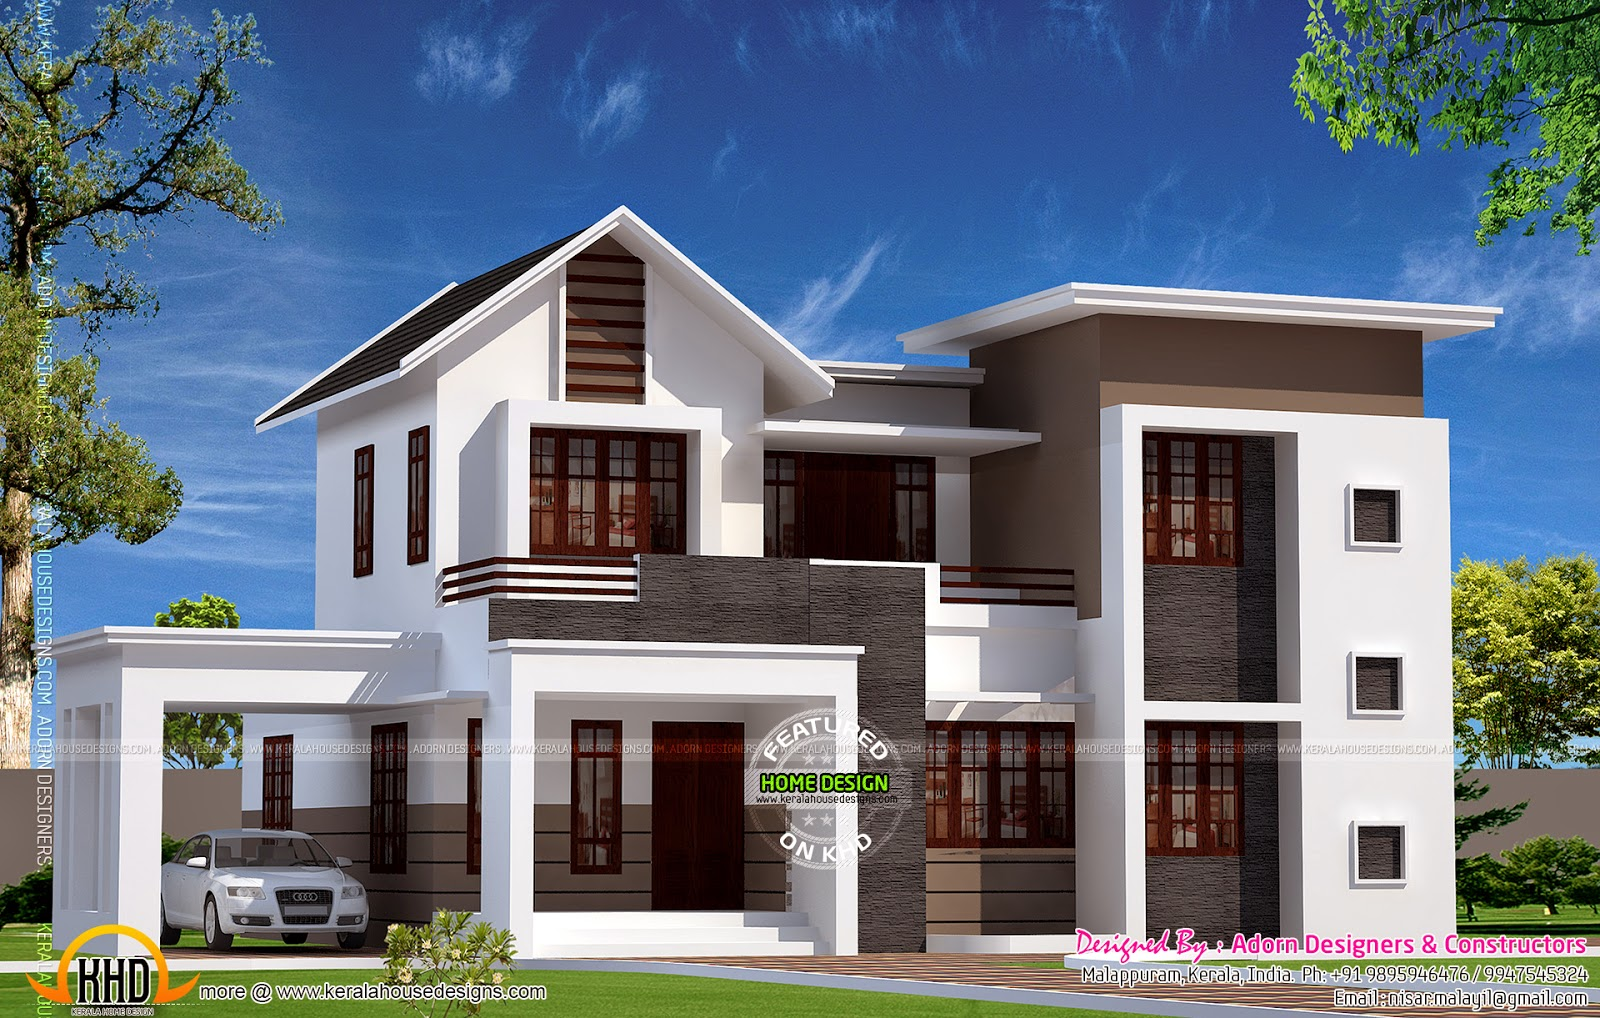 New house design in 1900 sq feet kerala home design and for Home gallery design